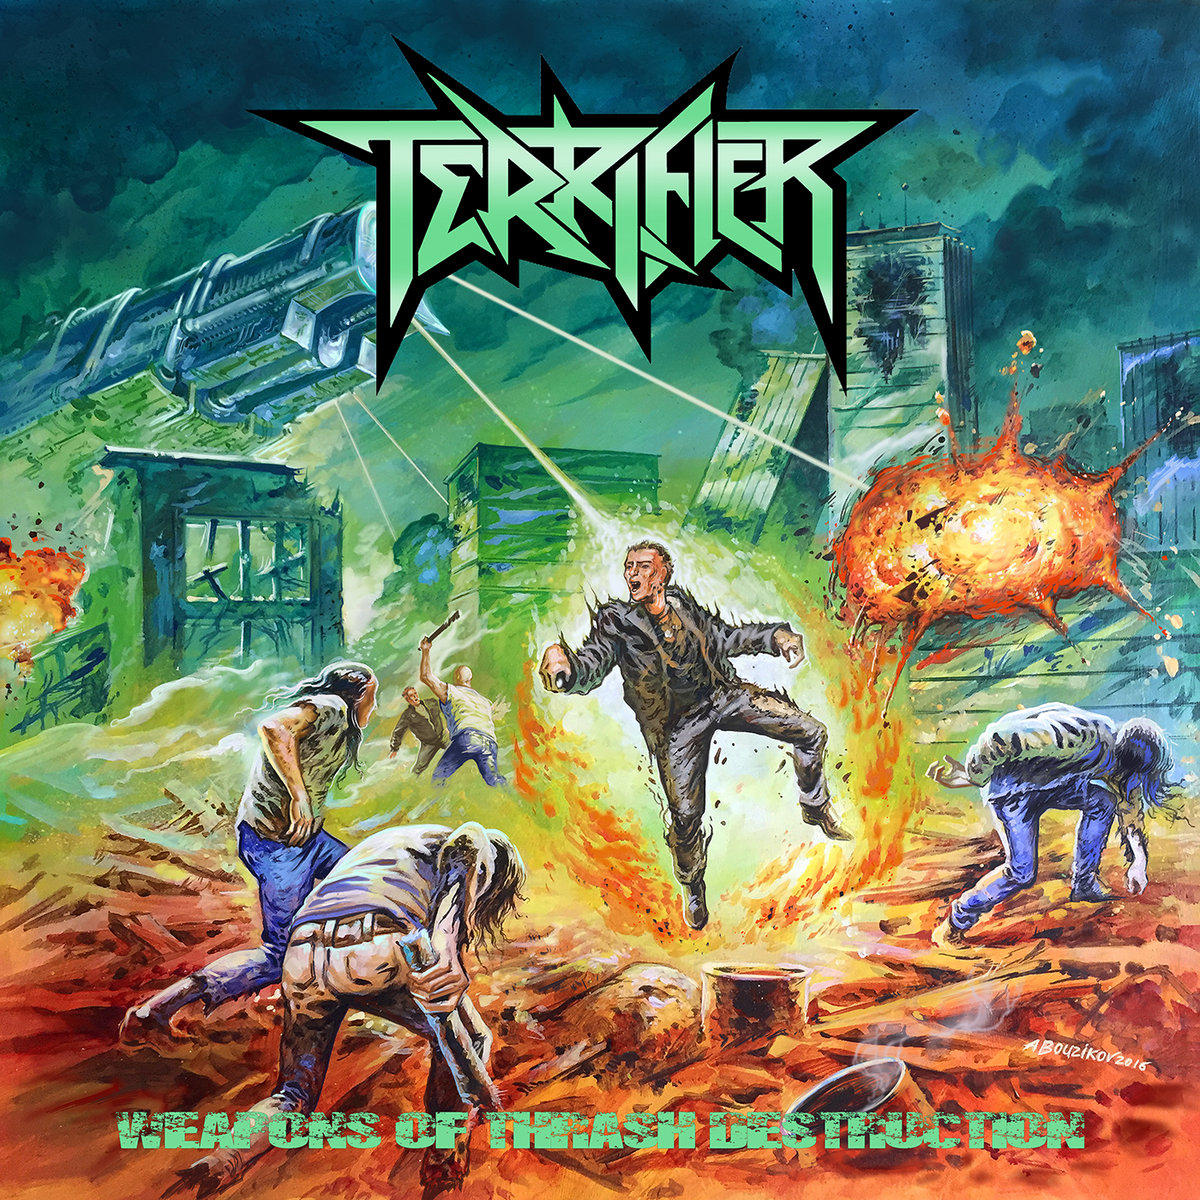 Image result for Terrifier : Weapons of Thrash Destruction